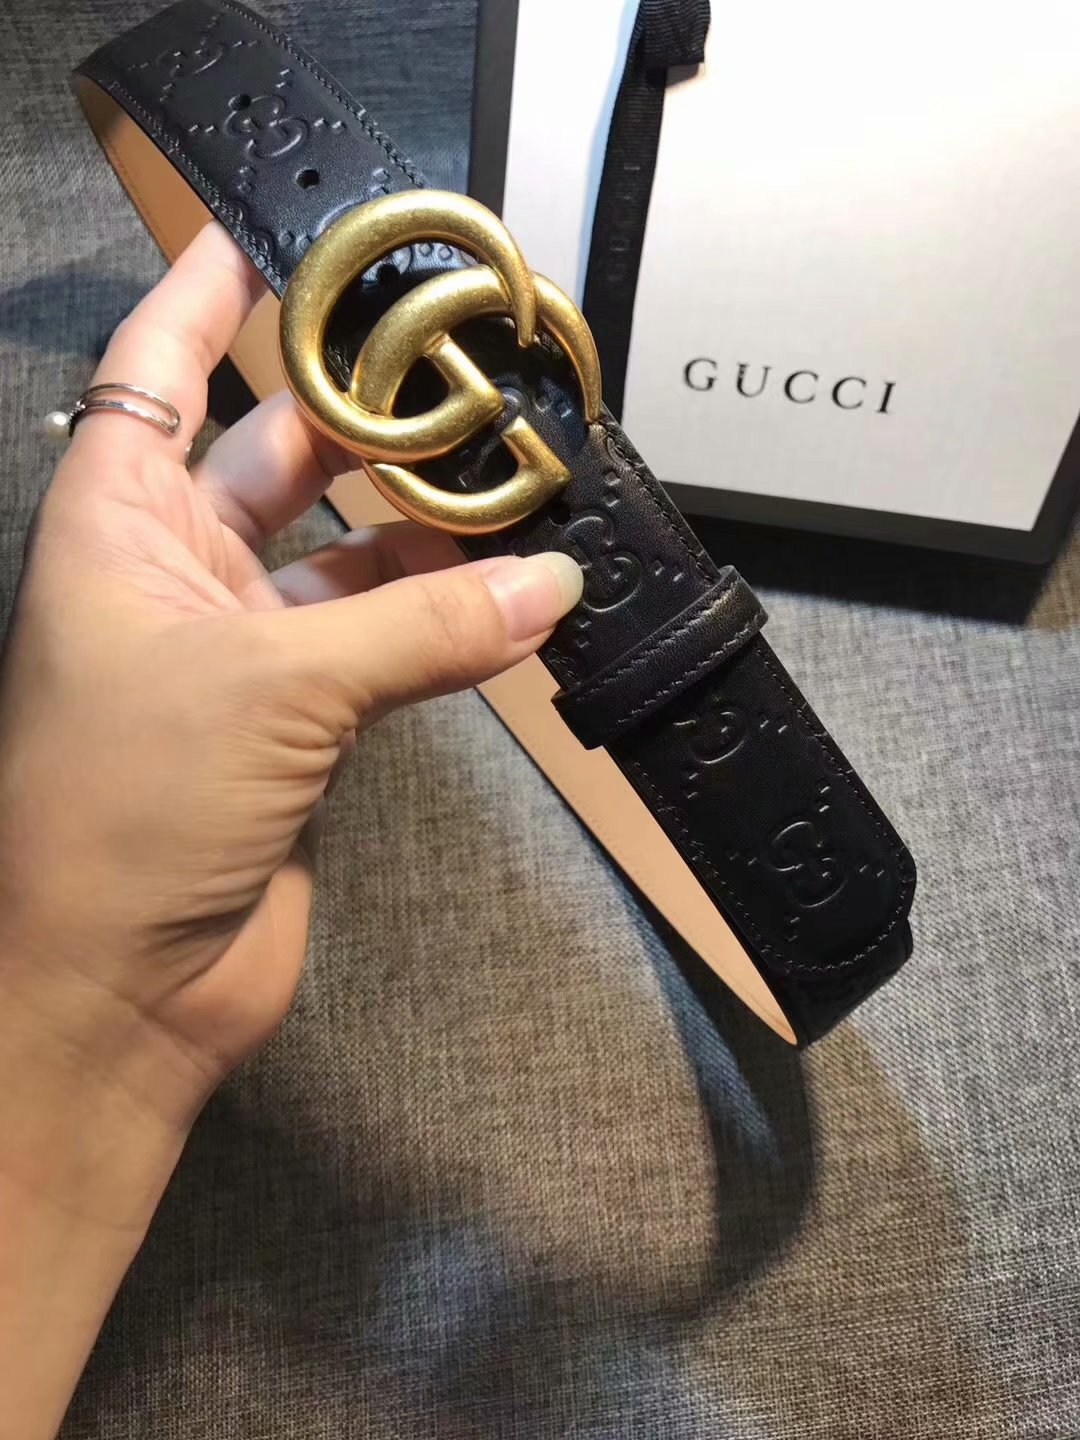 Cheap Replica Gucci Women Leather Belt Black Width 3.5cm With Gold Buckle 082